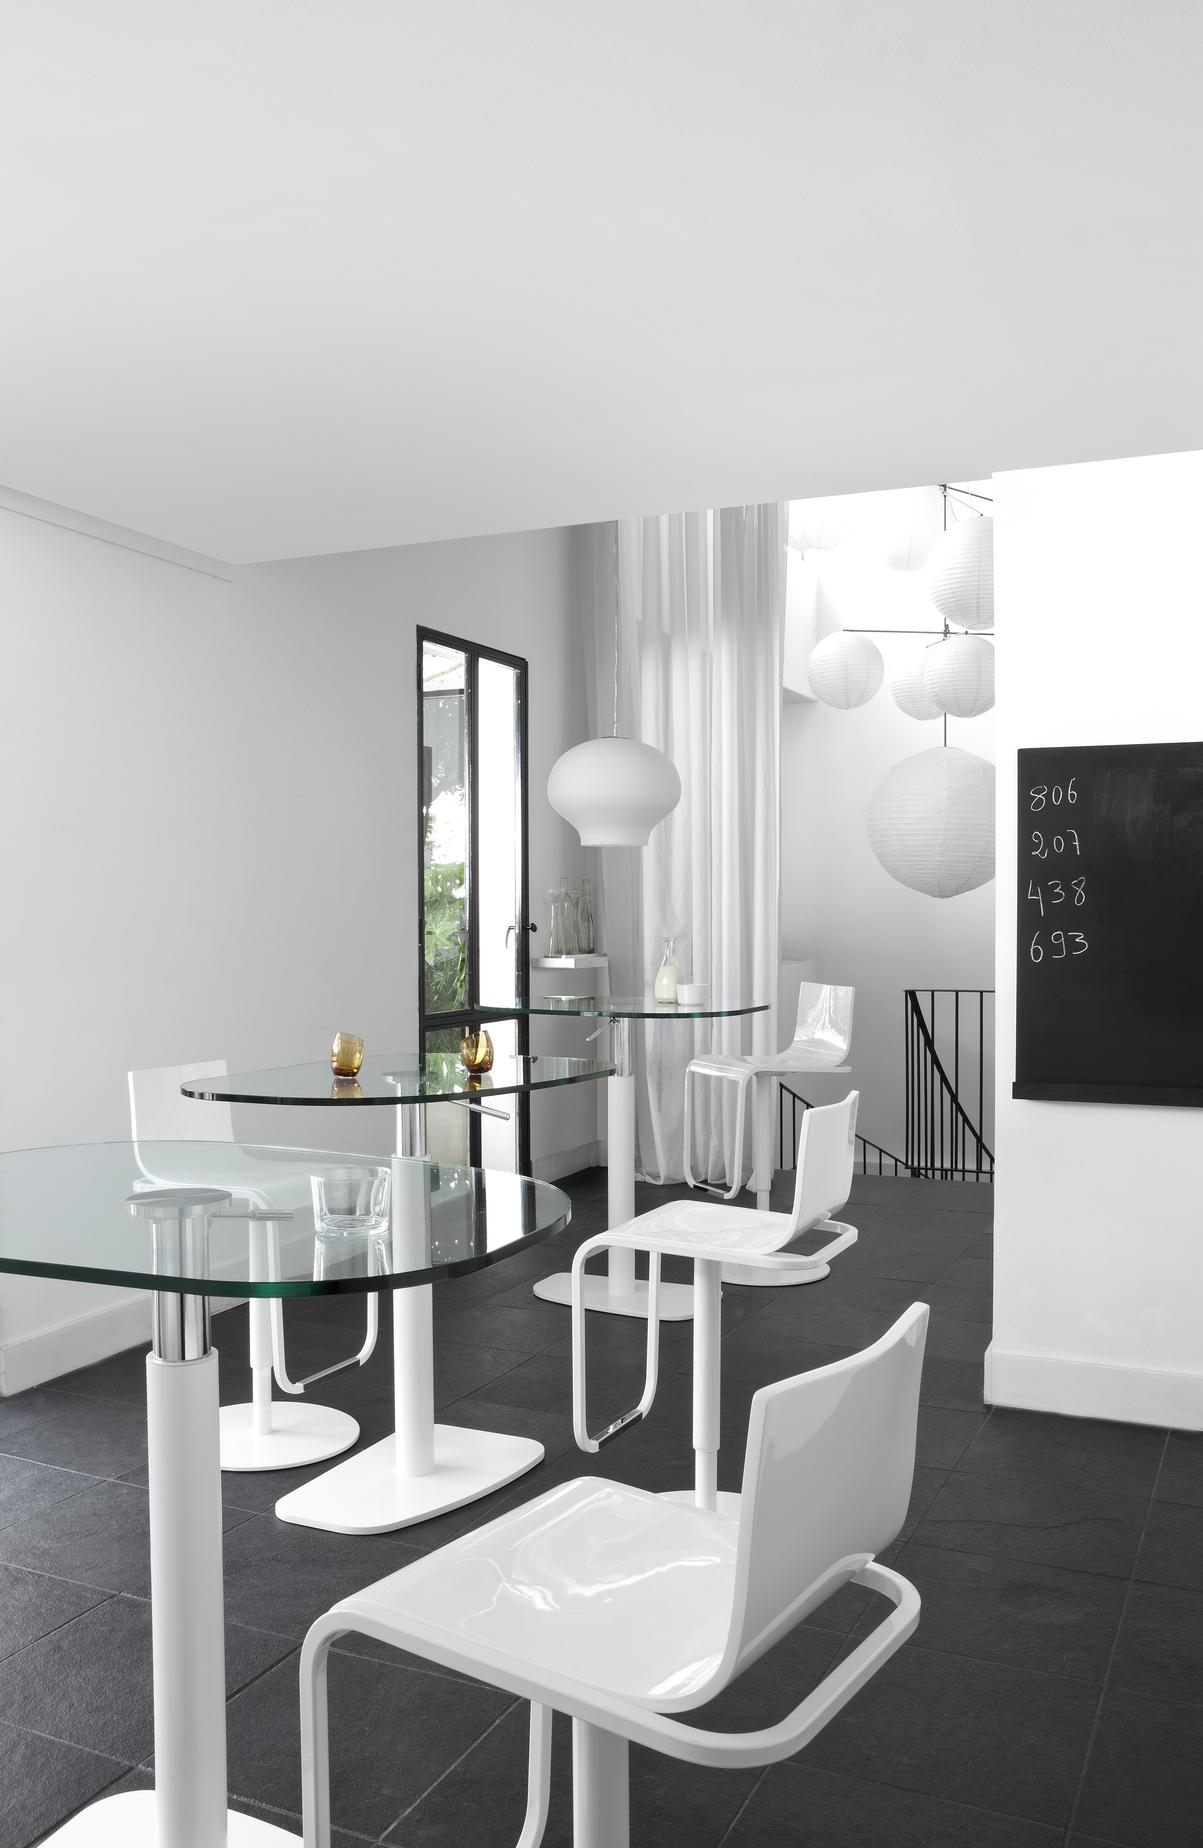 TABLE WHITE LACQUERED BASE CLEAR GLASS TOP Ligne Roset